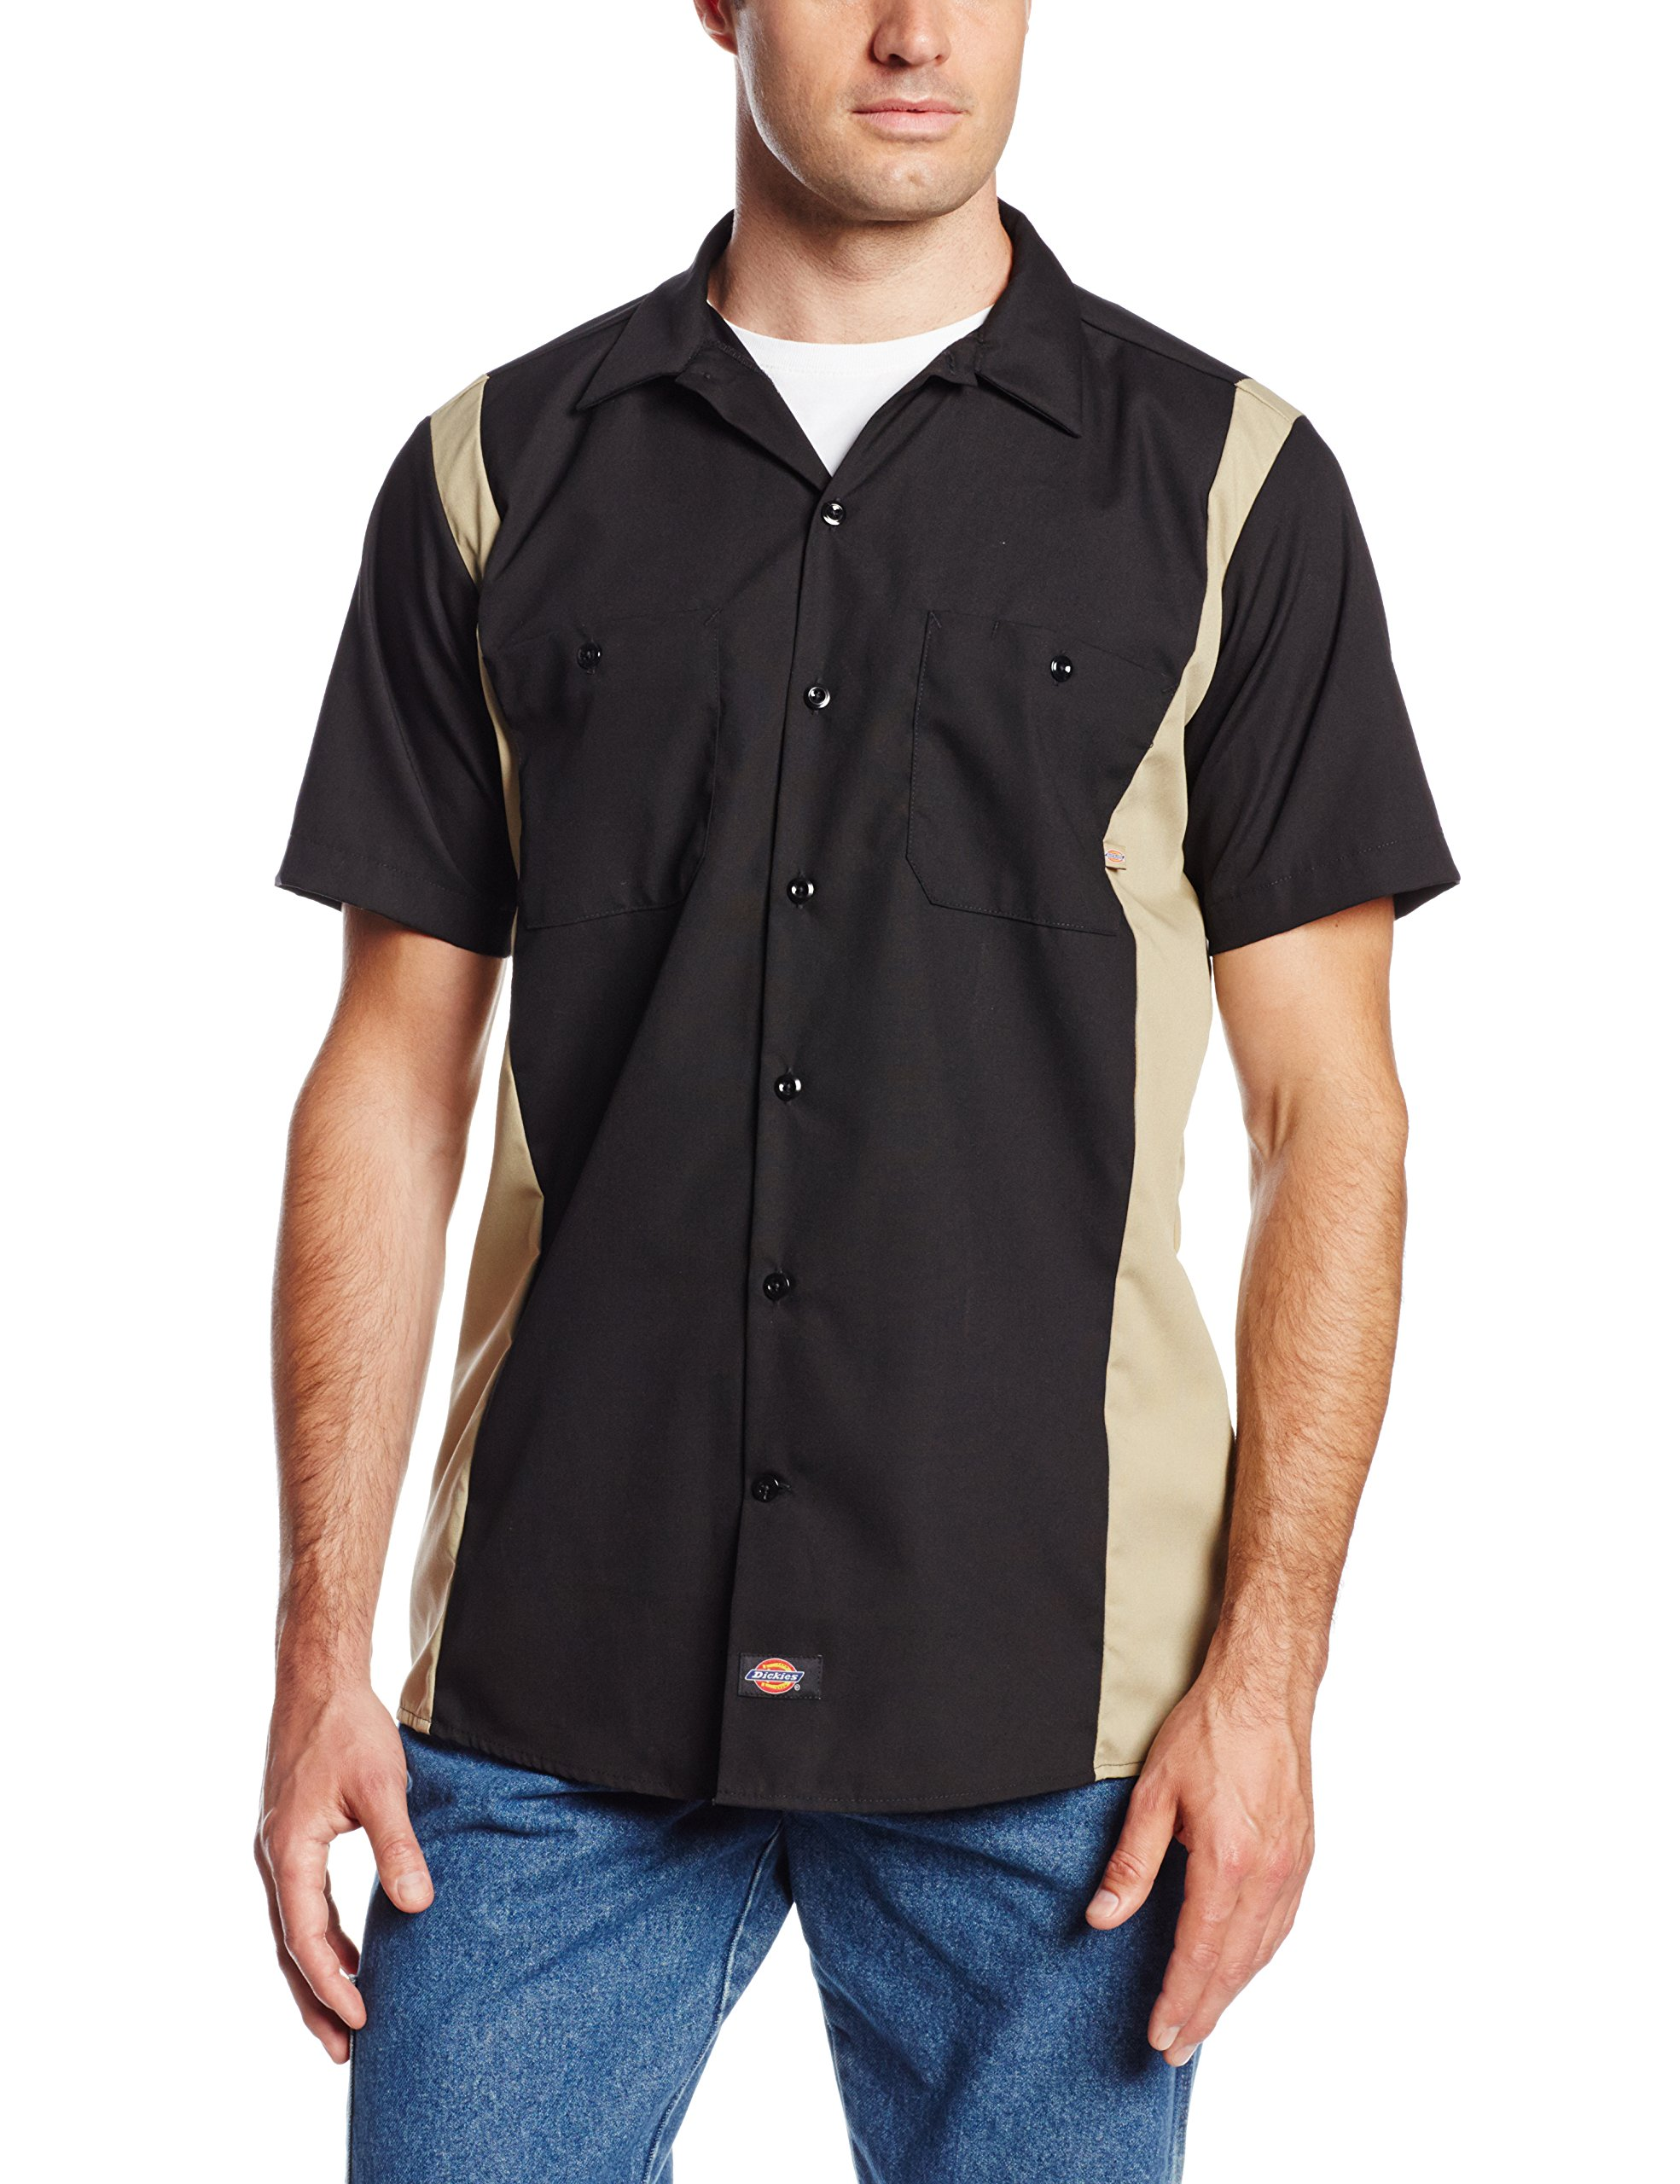 Dickies Occupational Workwear LS524BKDS 2XLT Polyester/ Cotton Men's Short Sleeve Industrial Color Block Shirt, 2X-Large Tall, Black/ Desert Sand